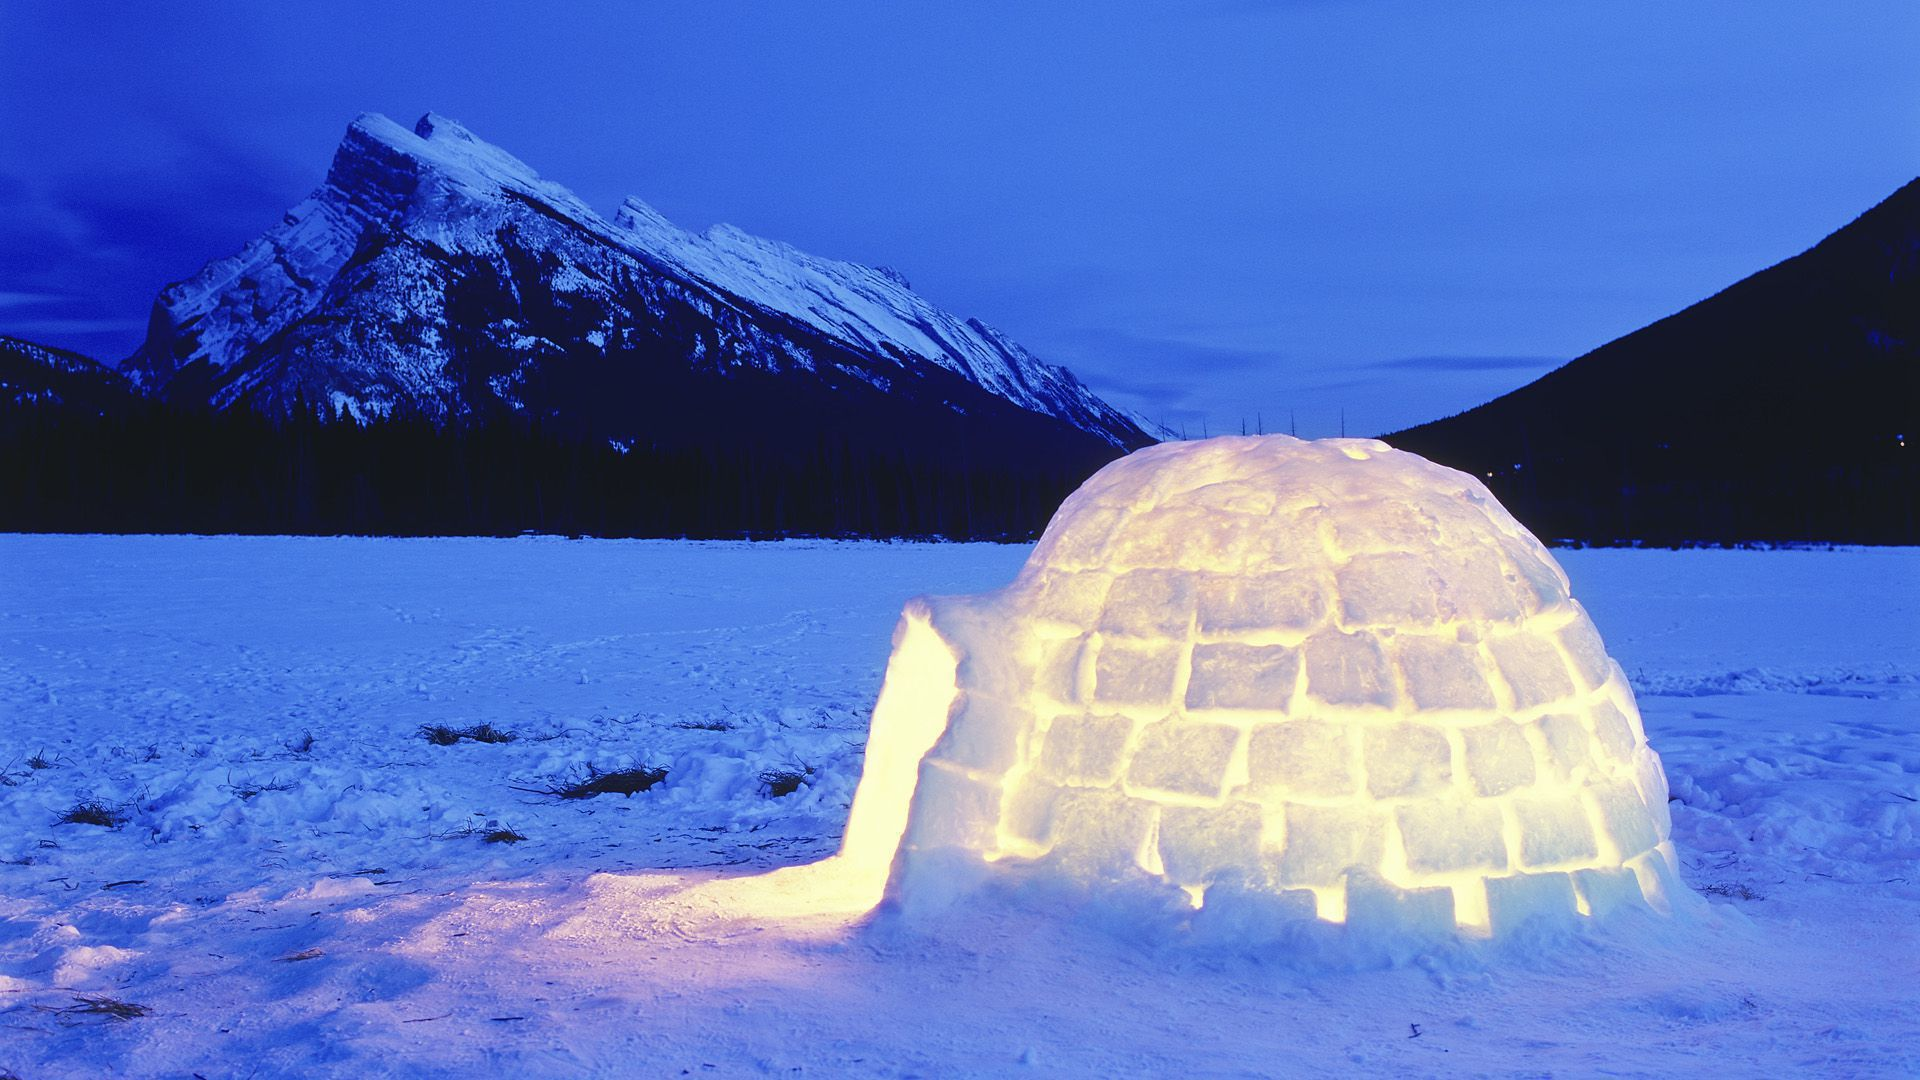 Igloo Lit Up At Night, Vermillion Lakes, Banff National Park, Alberta, Canada